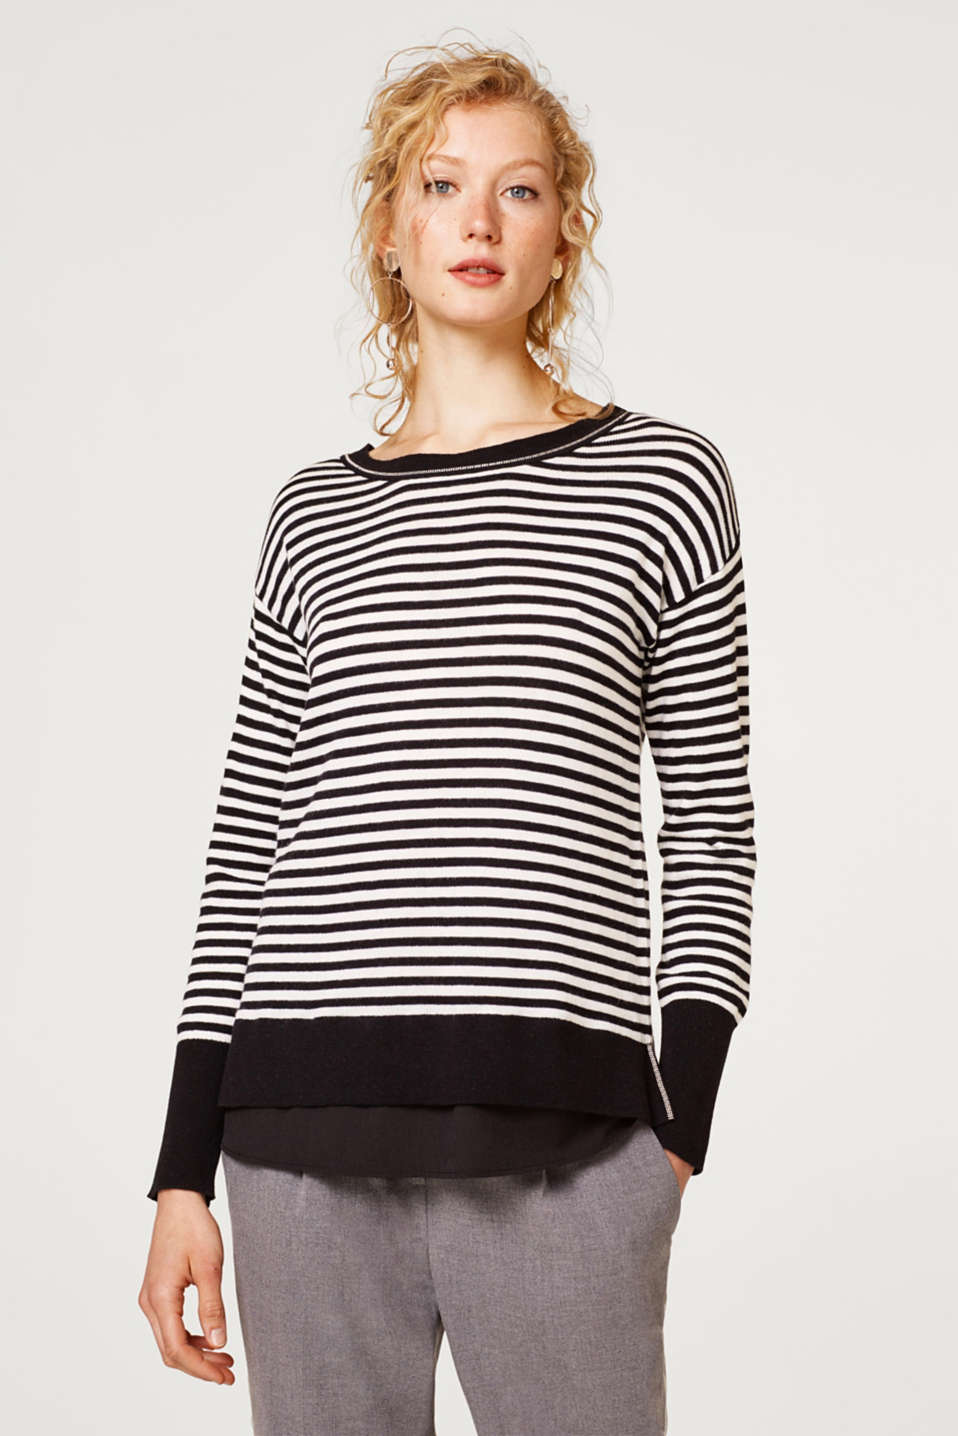 Esprit - With wool/cashmere: Jumper with chain details